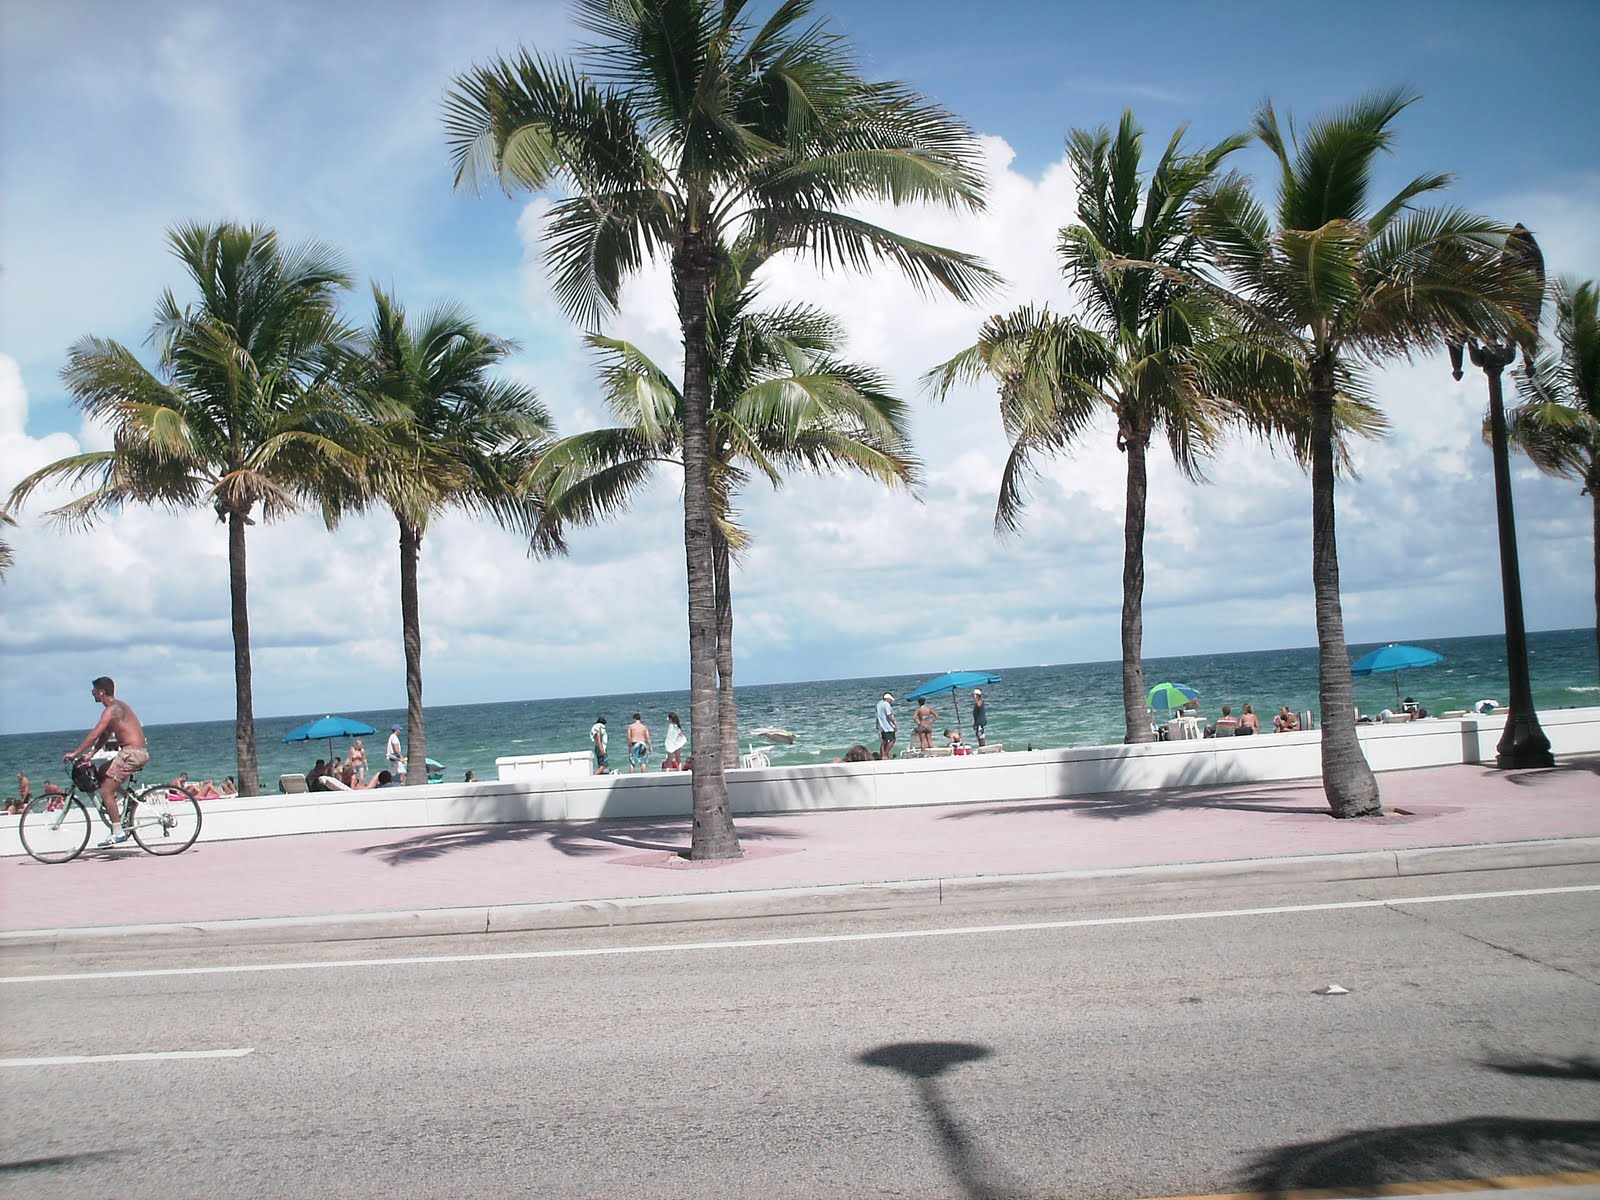 nude beach ft lauderdale florida